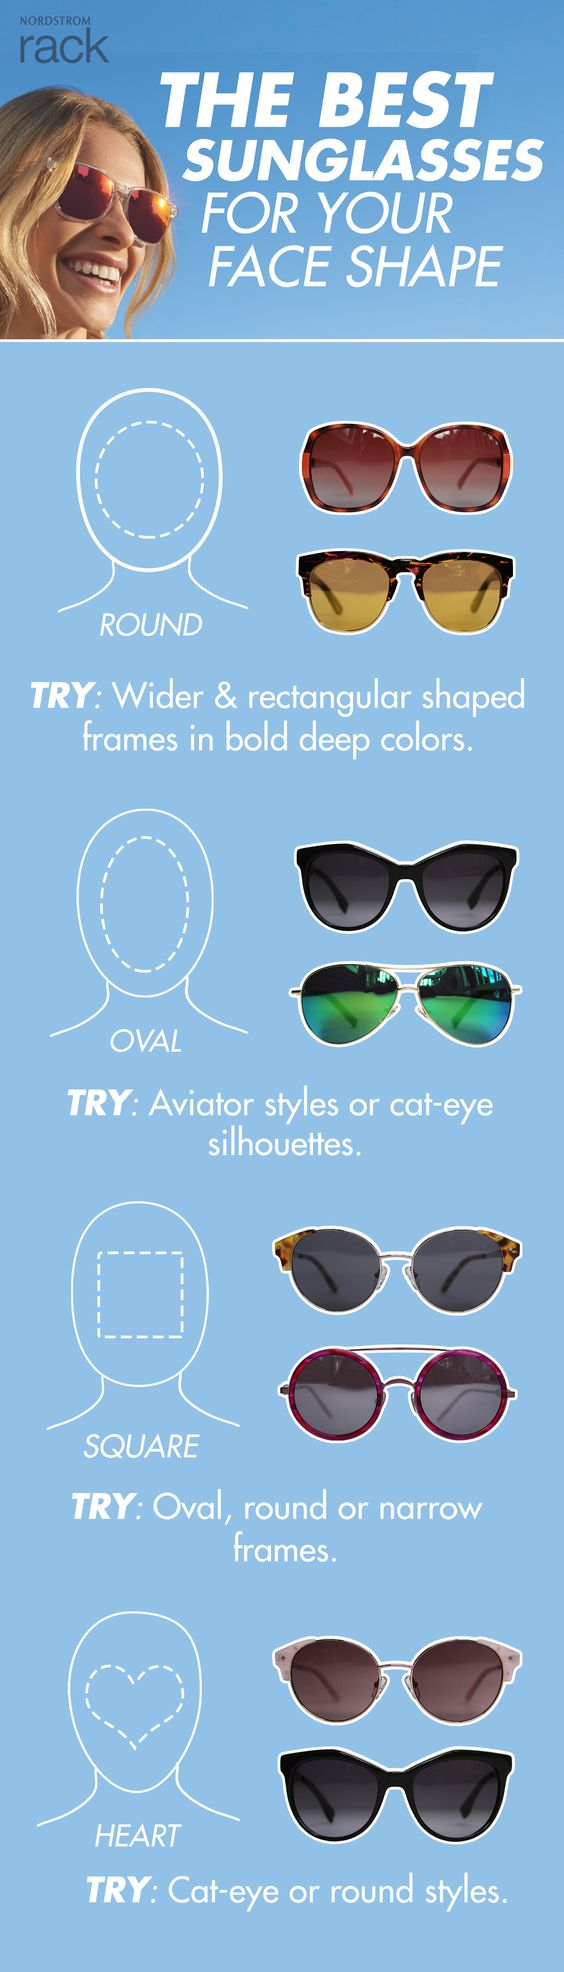 Choose The Perfect Sunglasses For Your Face Shape